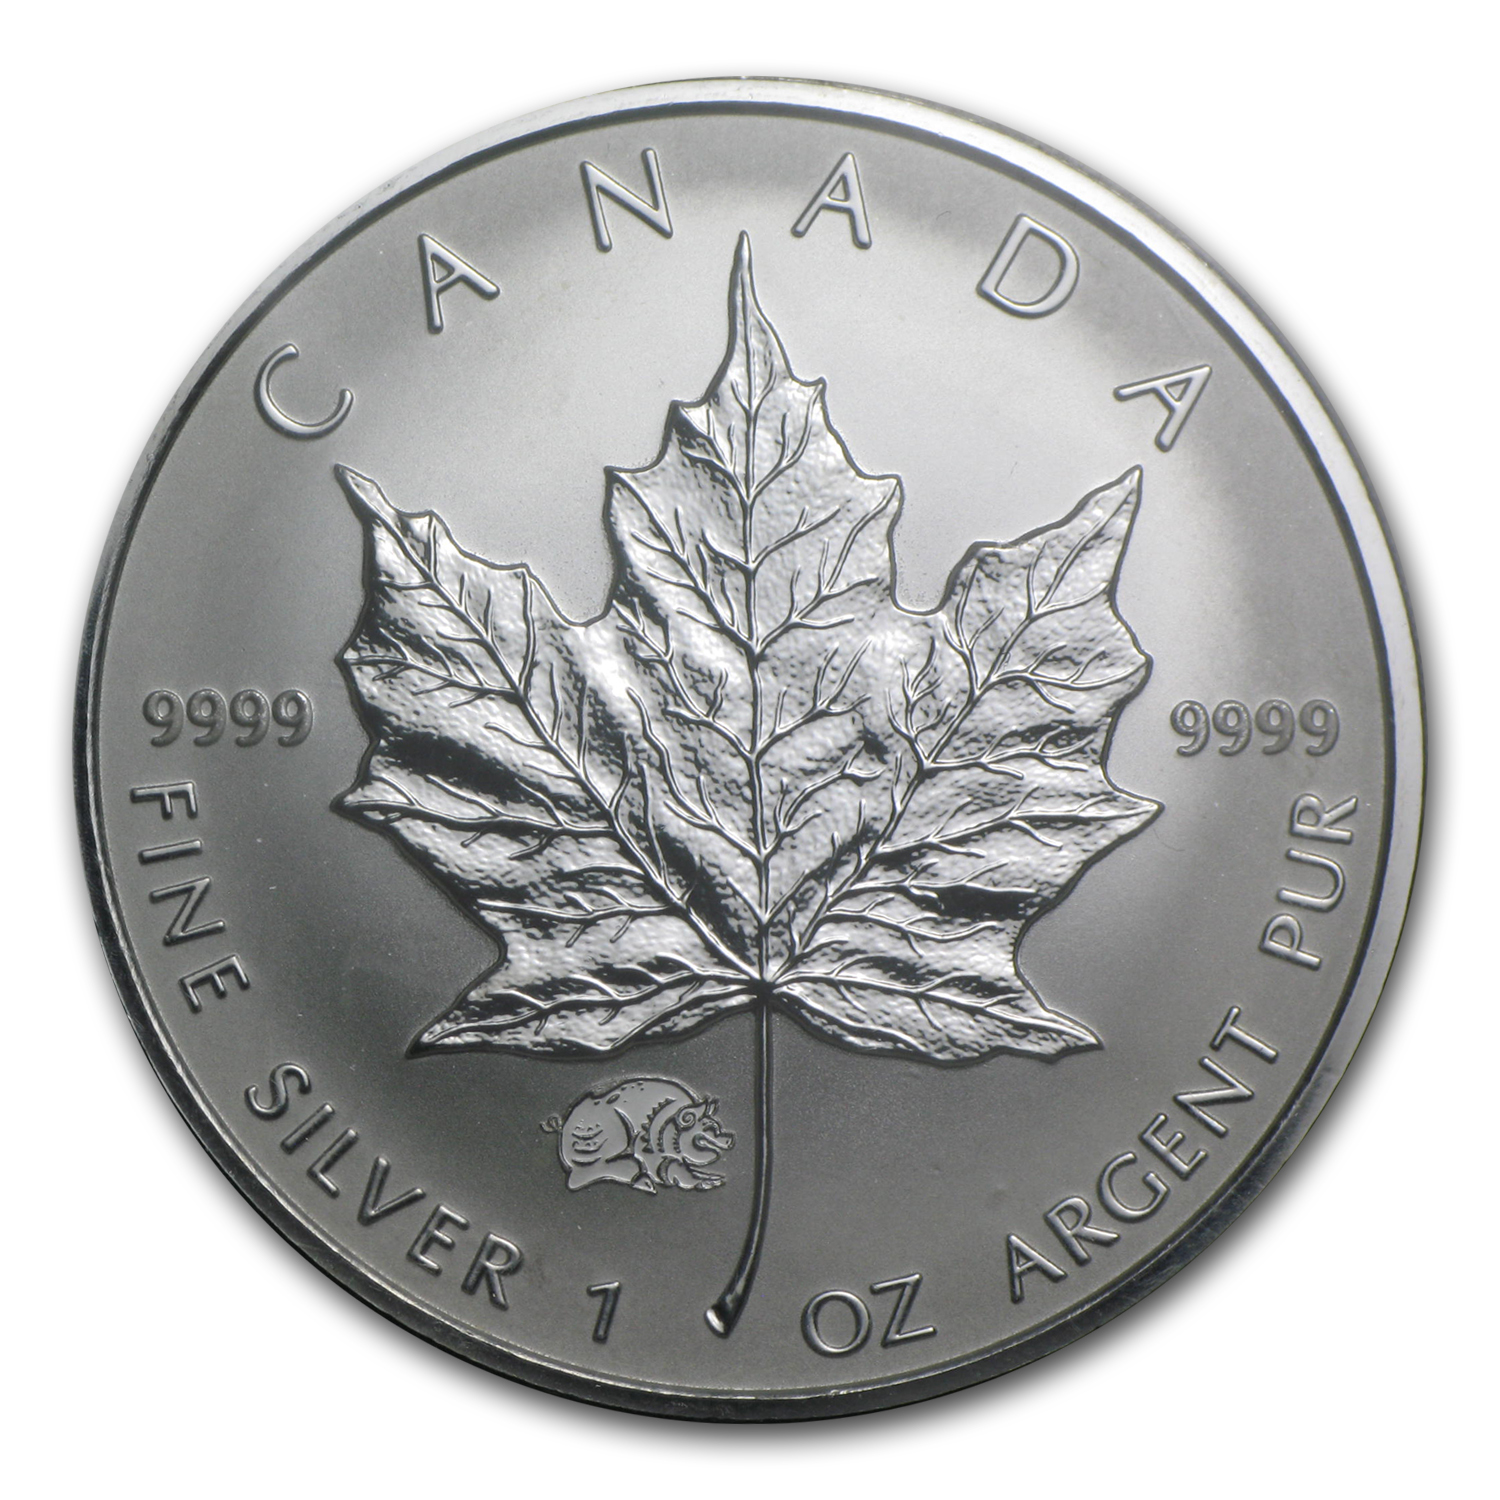 2007 1 oz Silver Canadian Maple Leaf - Lunar PIG Privy